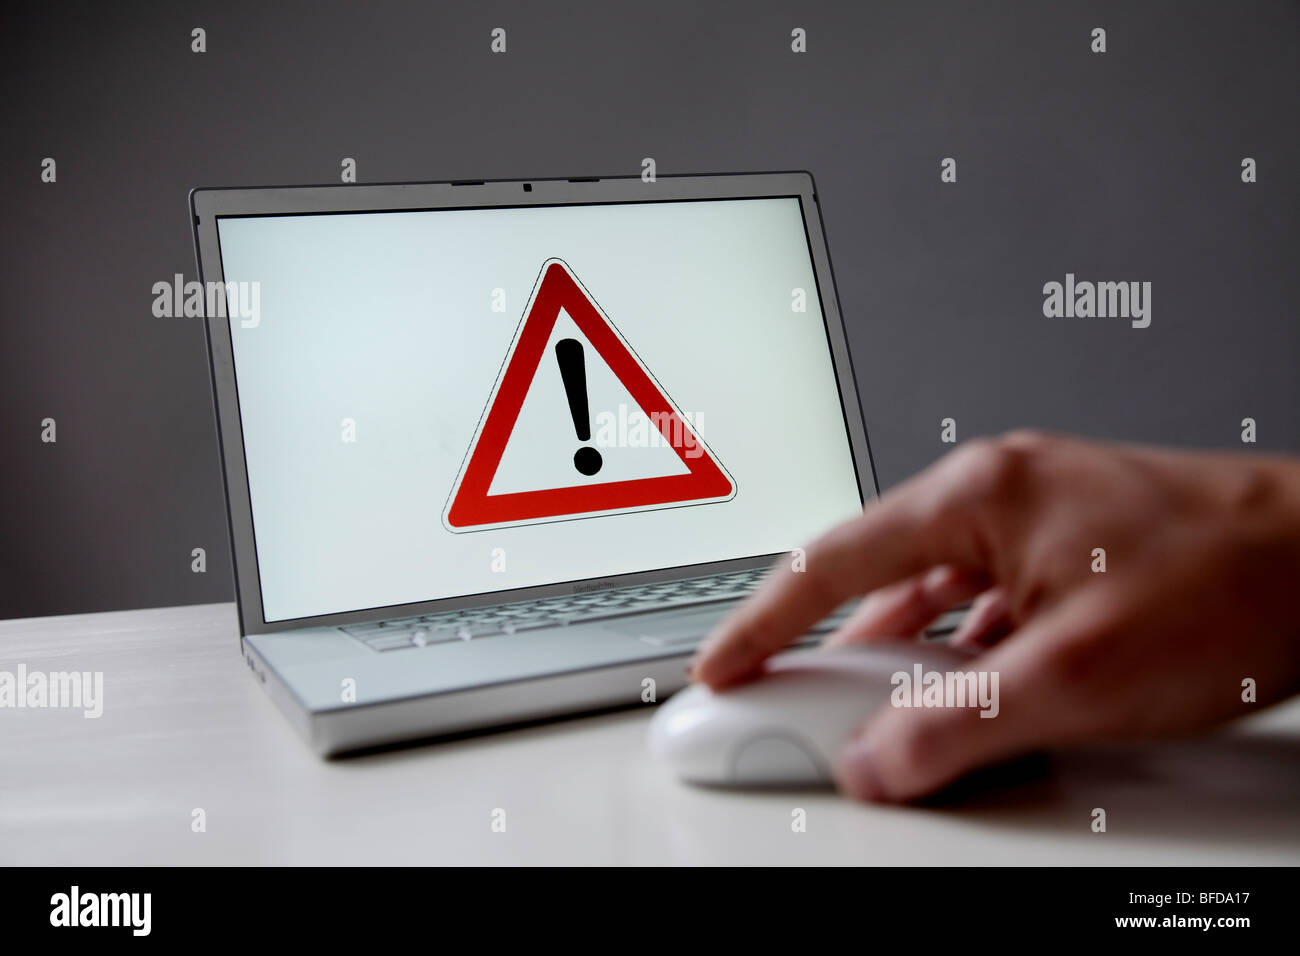 Warning sign on computer screen - Stock Image